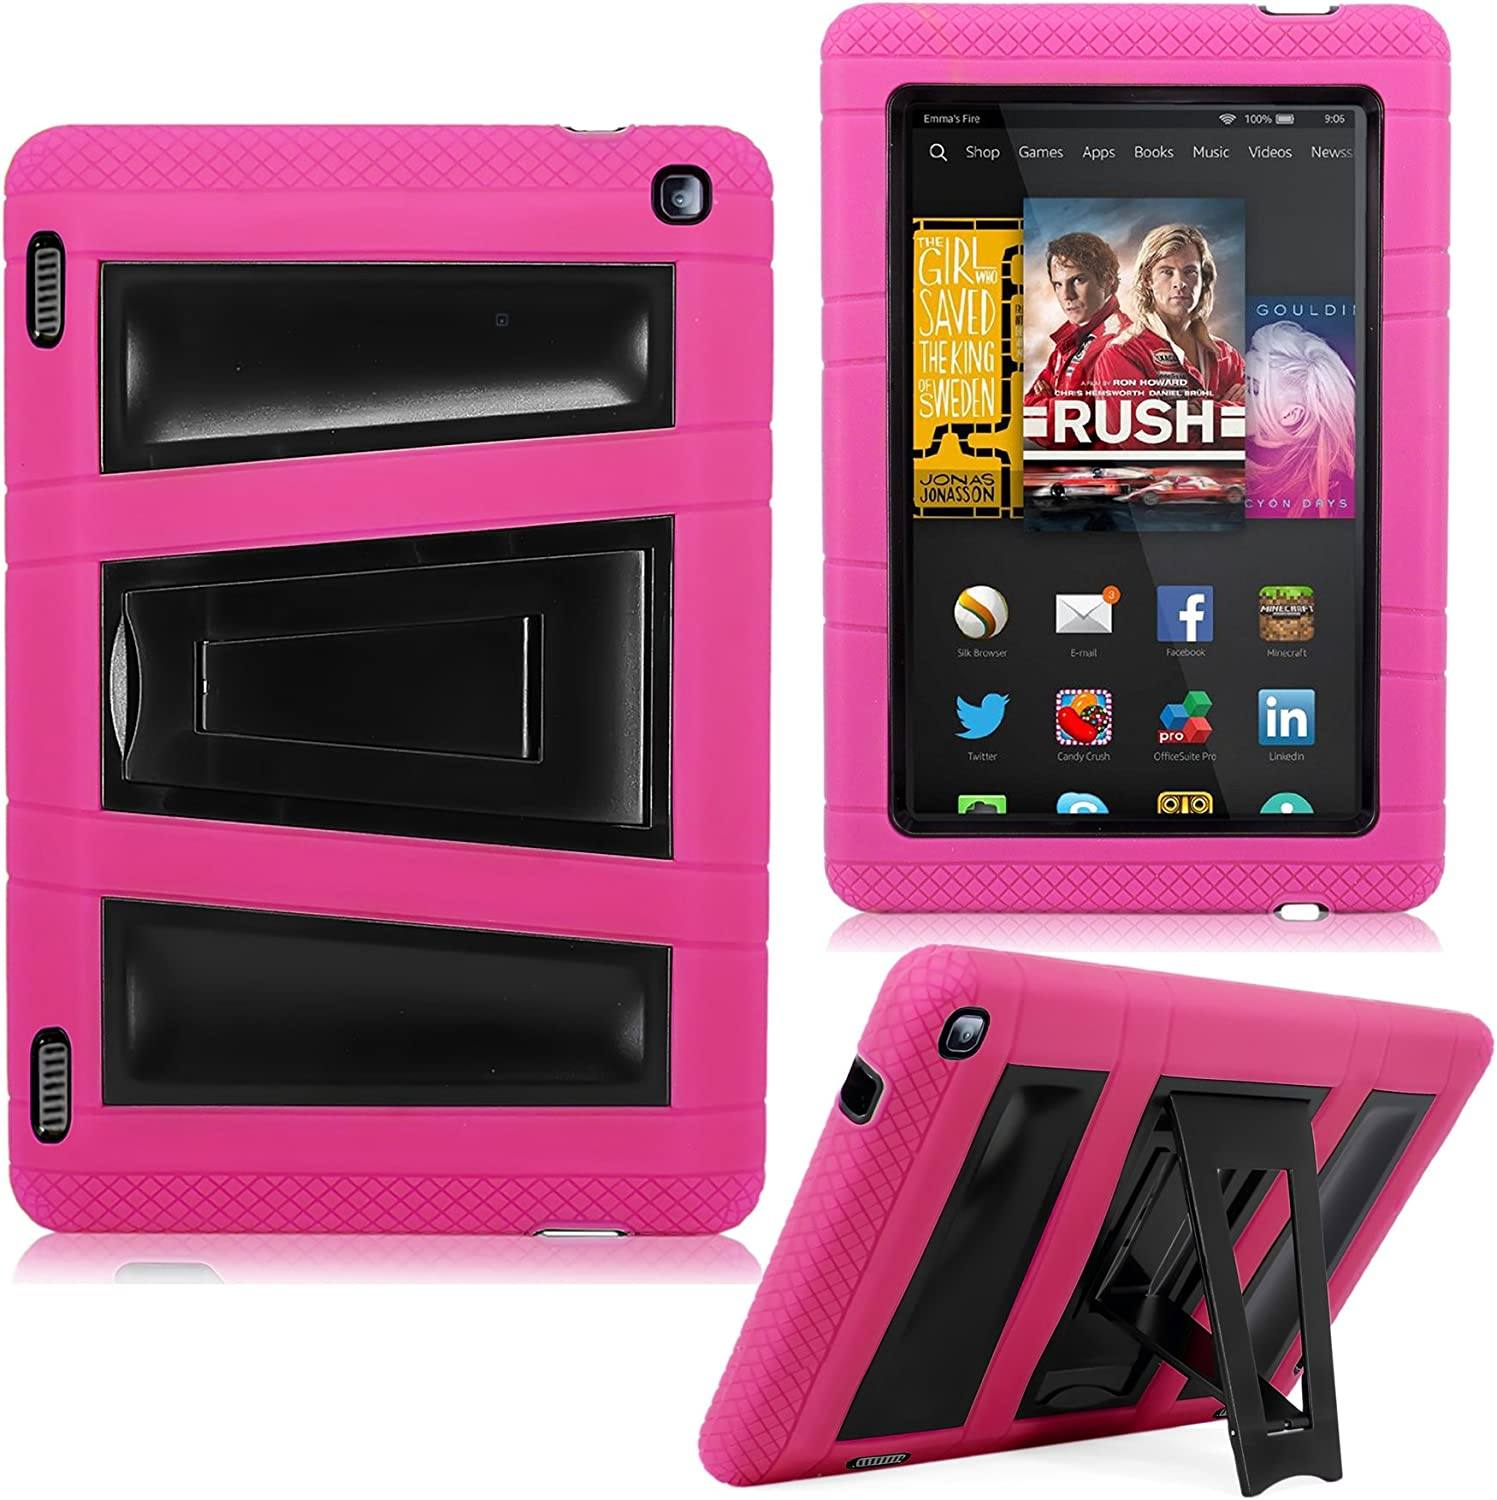 Amazon Com Kindle Fire Hd 7 2014 Case Cellularvilla Hybrid Armor Hard Soft Heavy Duty Dual Layer Combo Case Cover With Kickstand For Amazon Kindle Fire Hd 7 Inch 2014 4th Generation